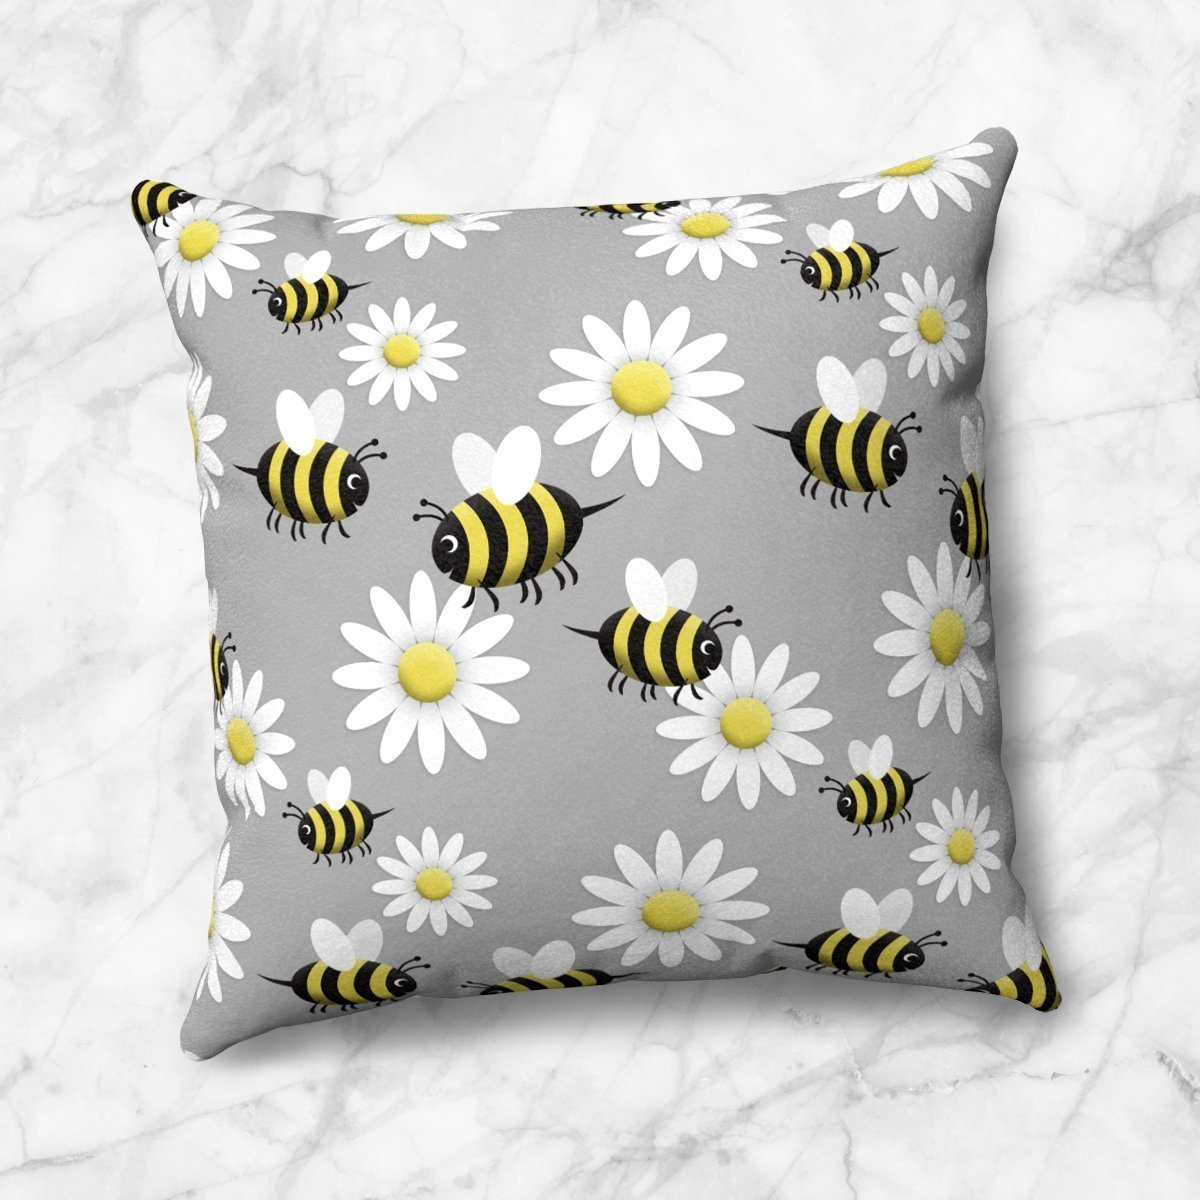 Happy Bee and Daisy Pattern Throw Pillow at Speckle Rock